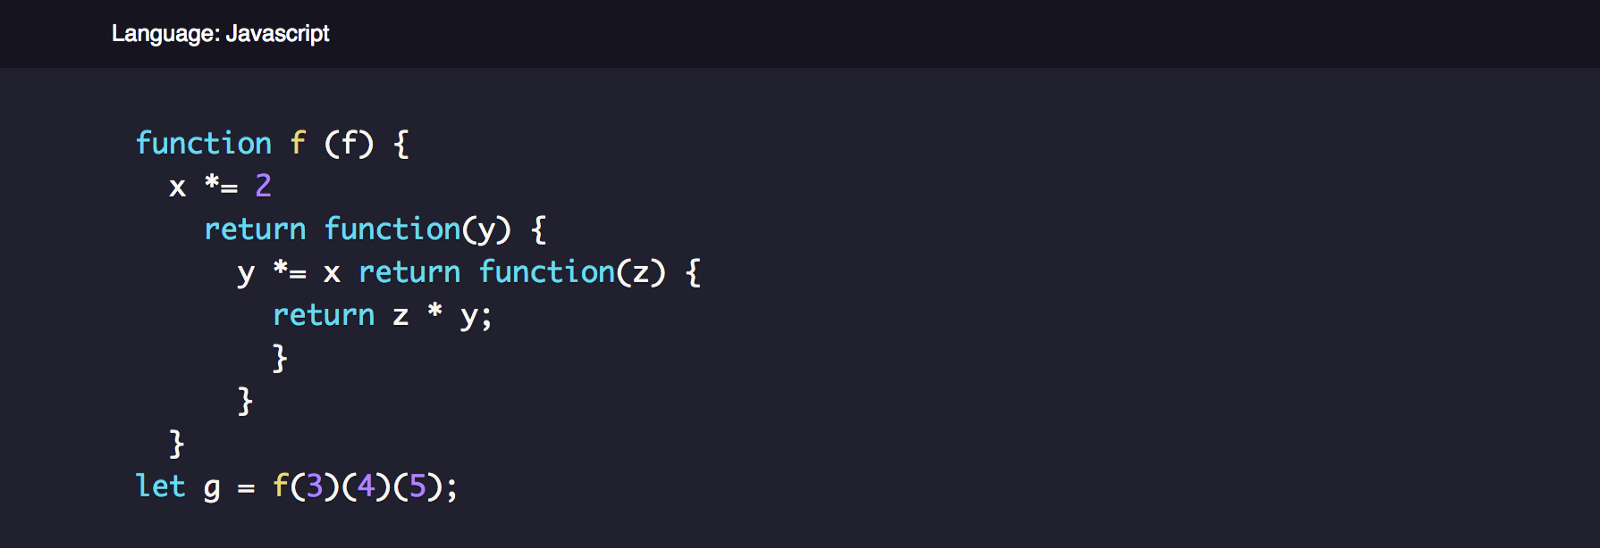 Get prismjs working in react get it working medium in their own words prism is a lightweight extensible syntax highlighter meaning it can be used to highlight code blocks or code samples in a website freerunsca Image collections